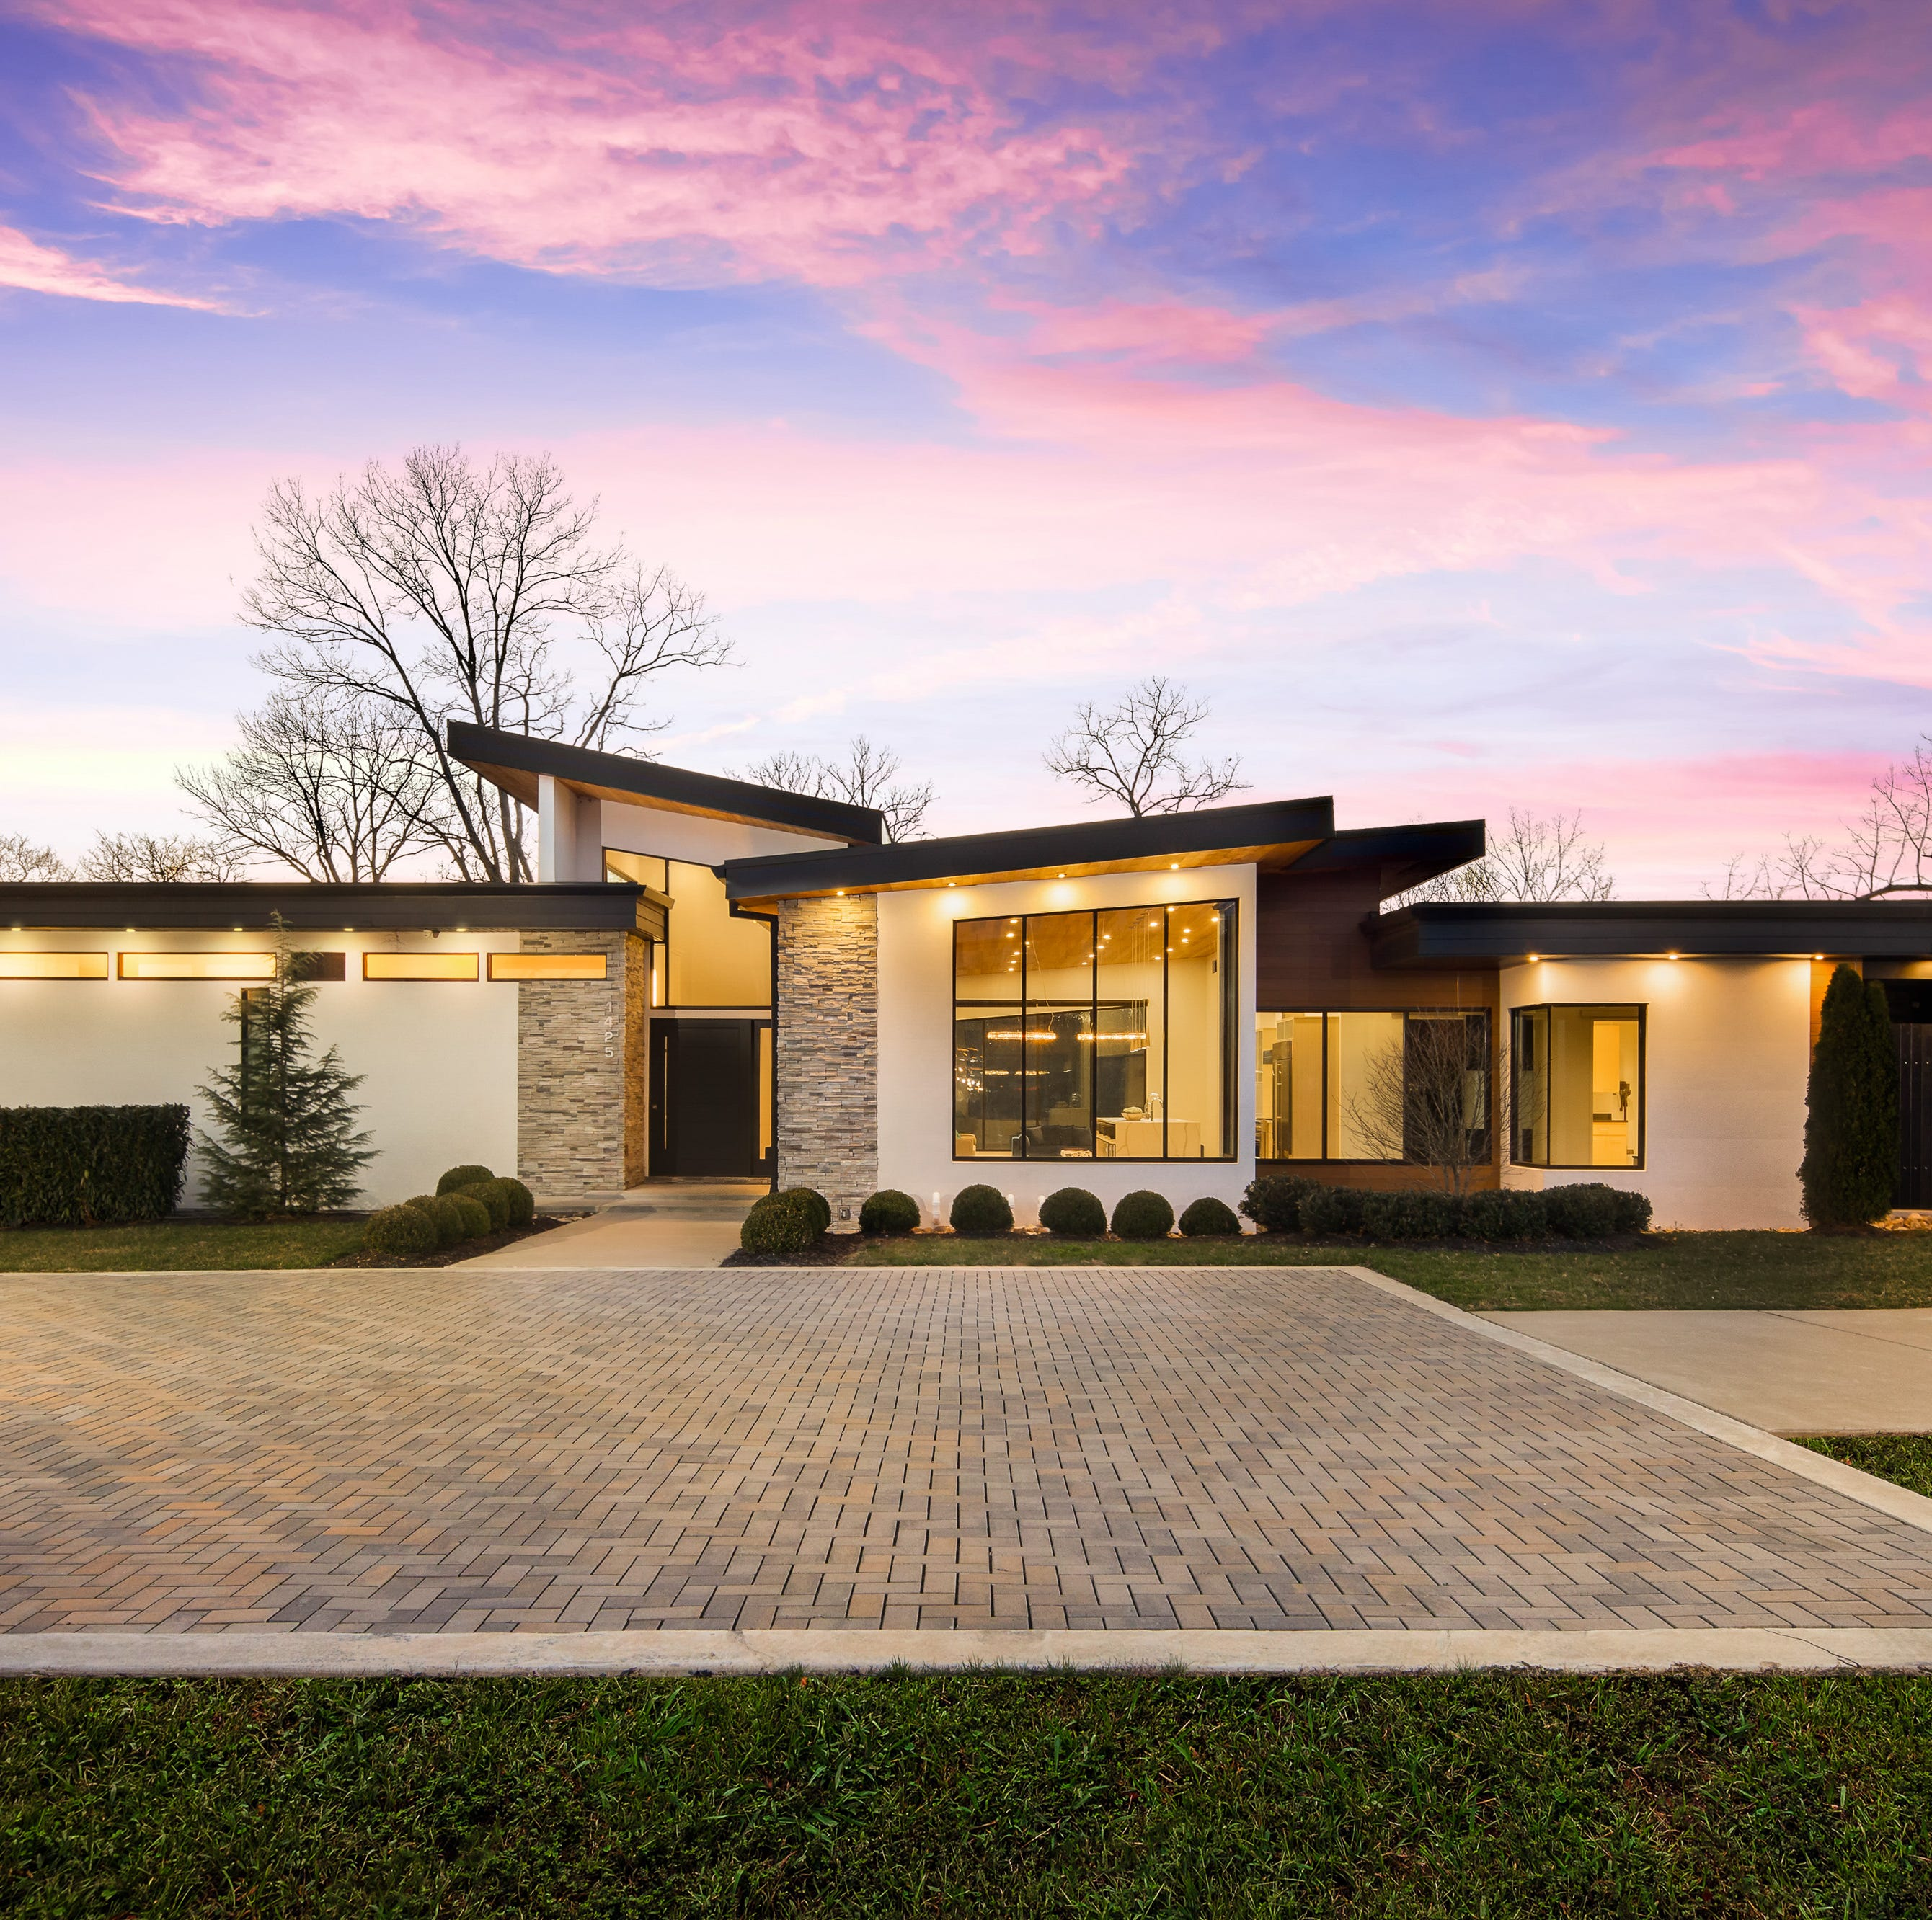 Brentwood home showcases modern architecture, local design